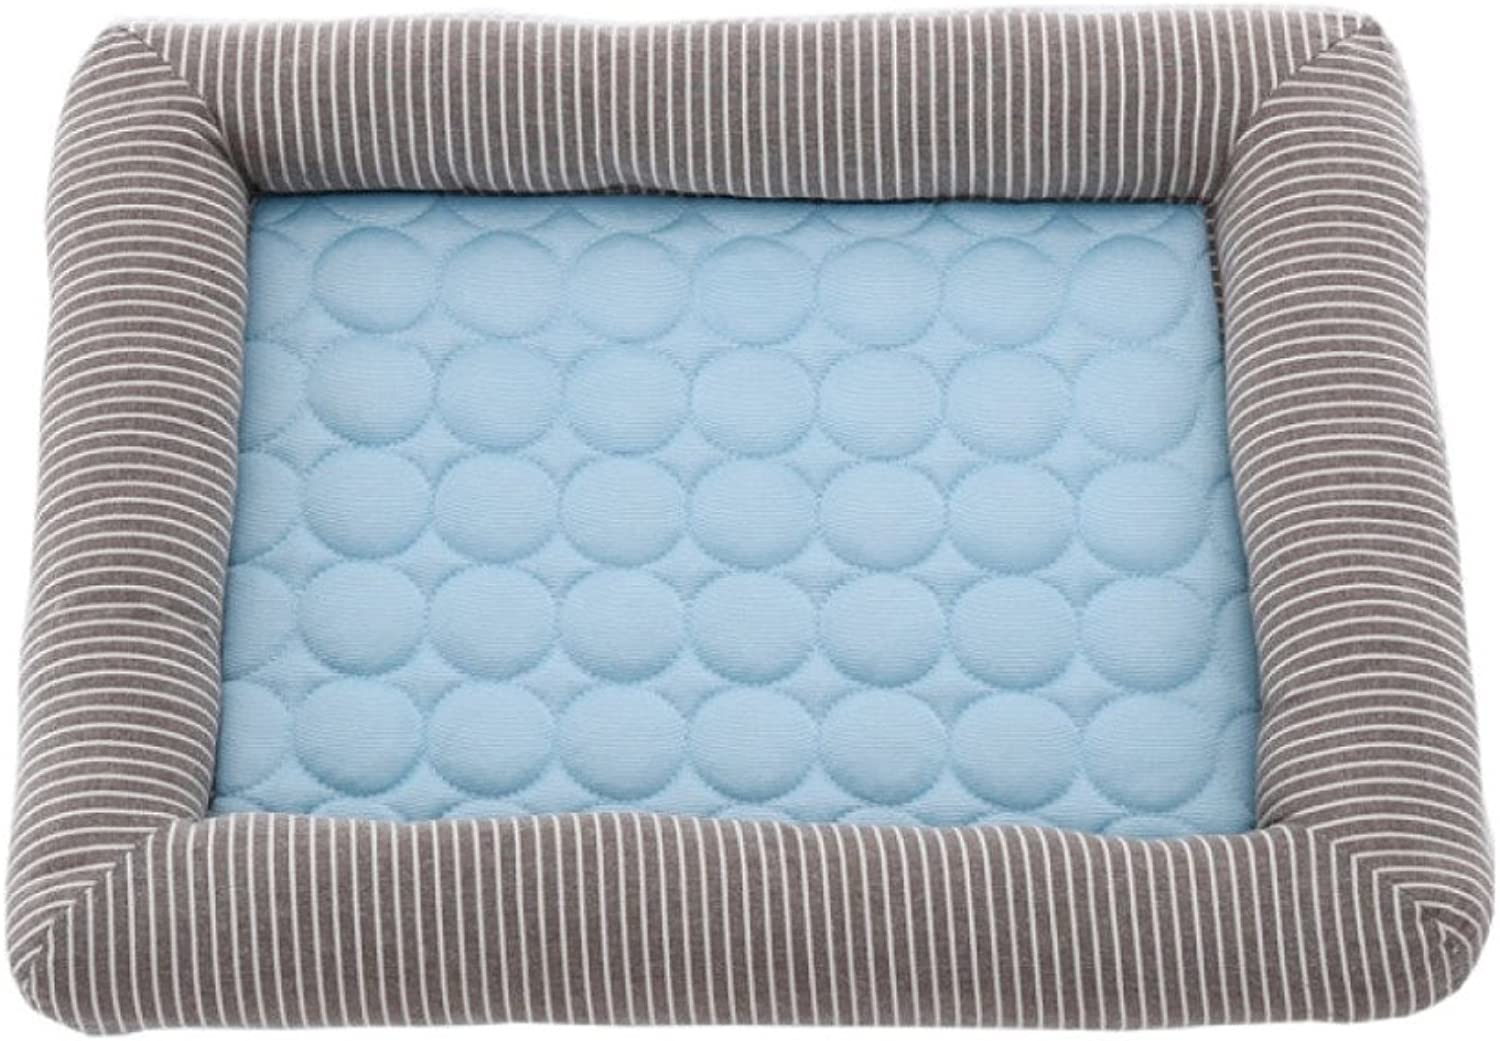 LDFN Dog House Removable and Washable Dog Mattress All Seasons Wear Resistant Bite Resistant,A4535cm